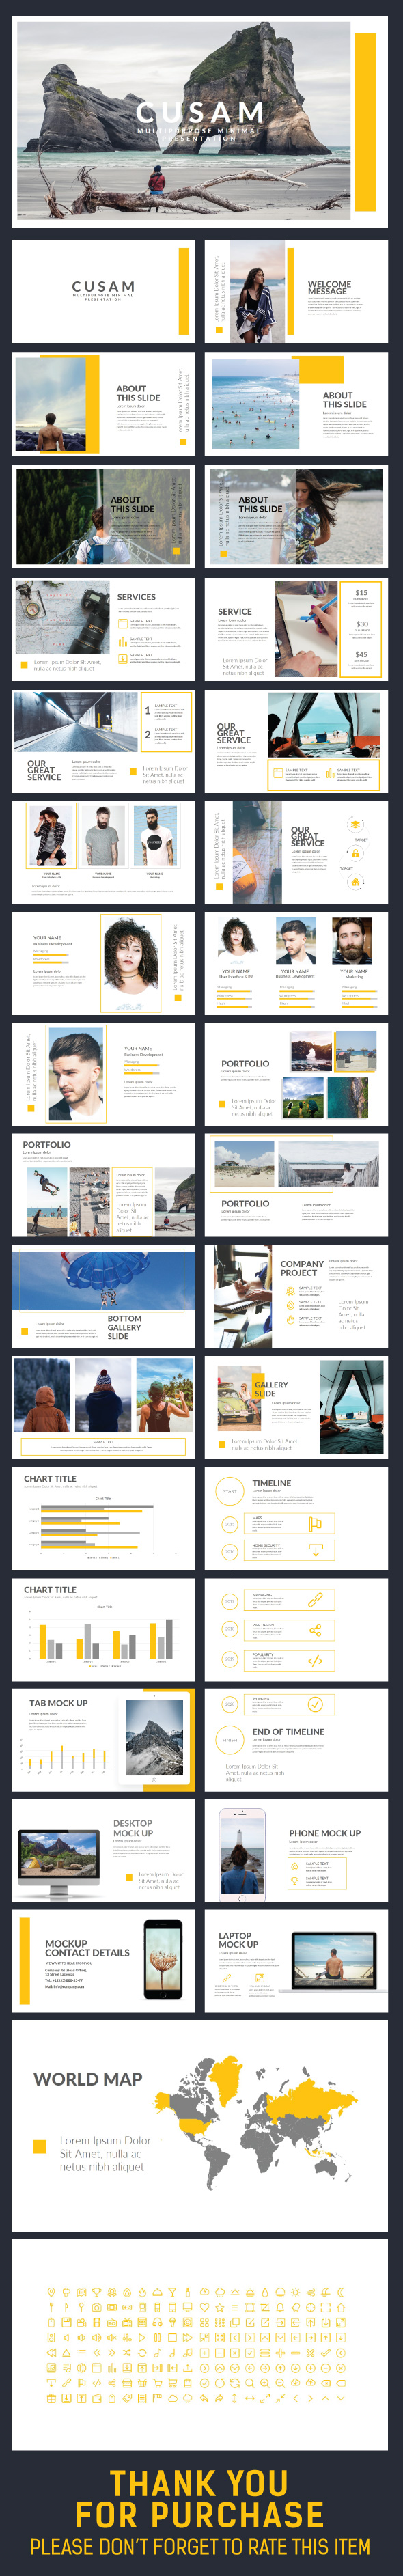 Cusam Google Slide Presentation - Google Slides Presentation Templates